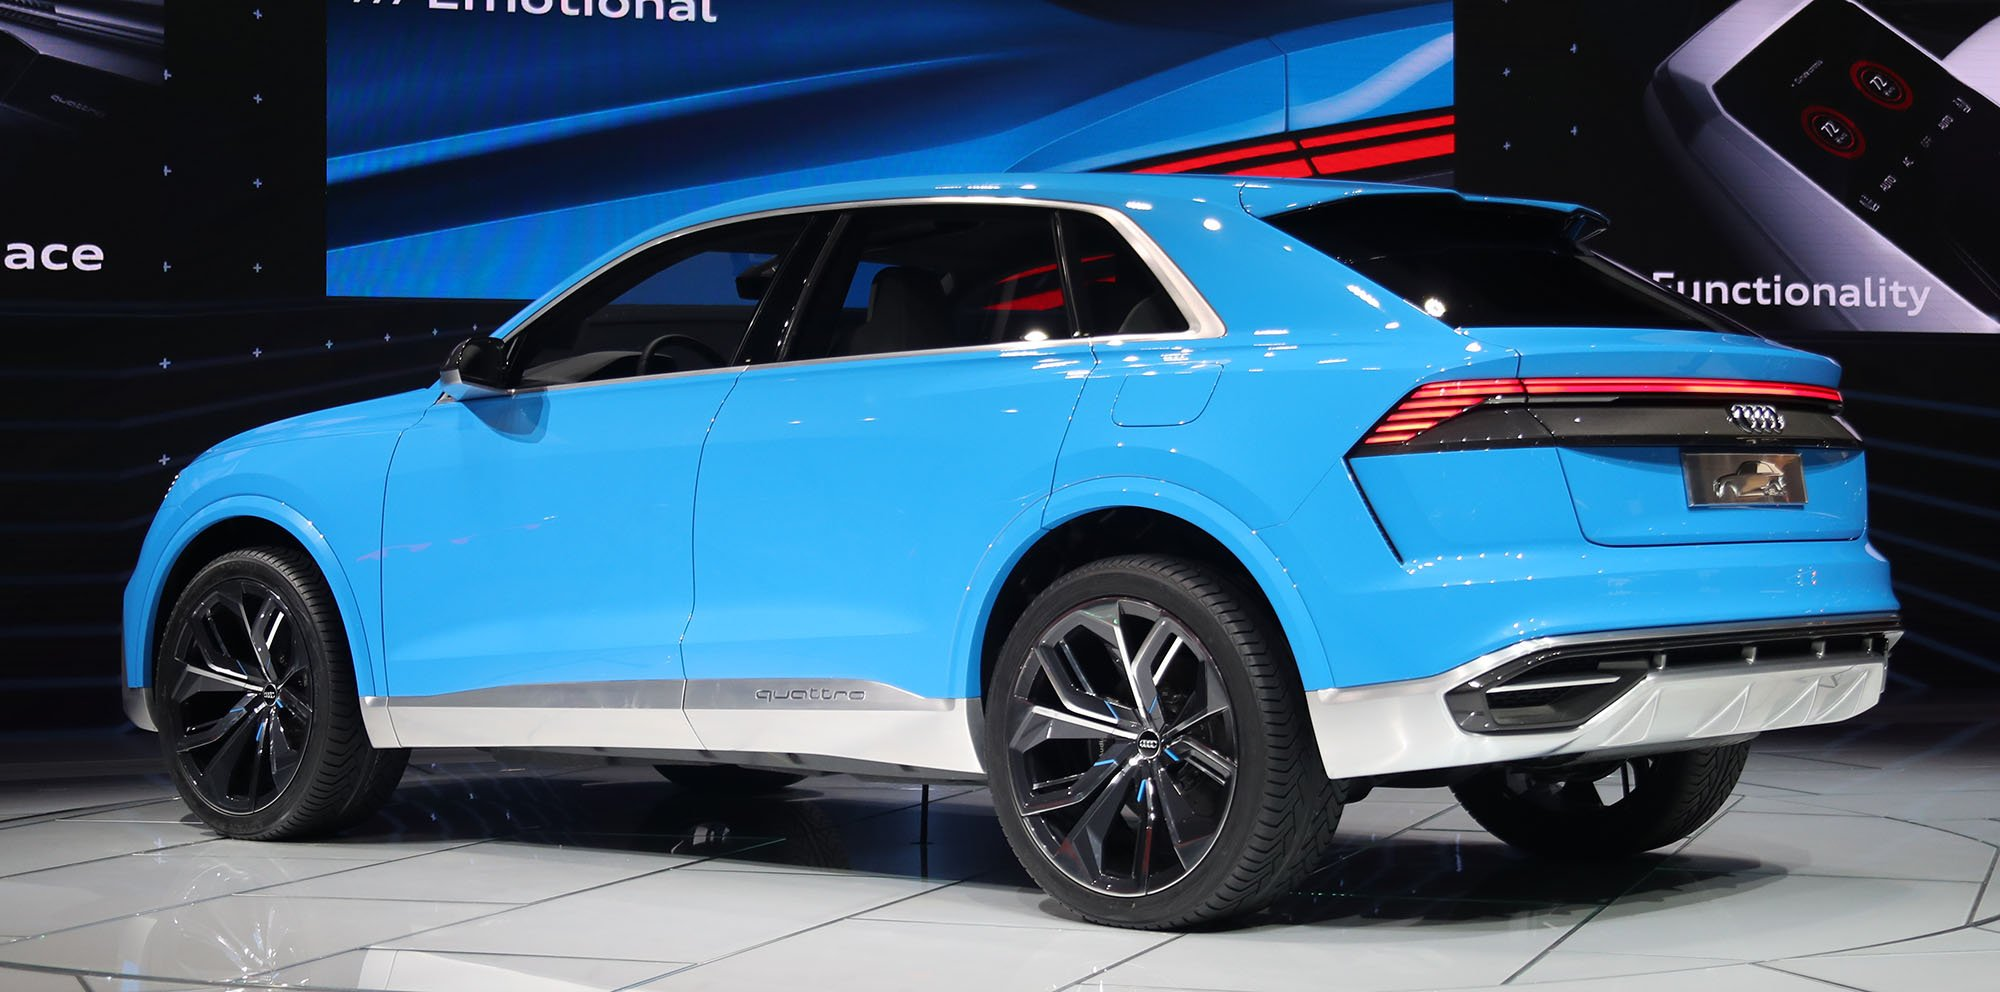 Mercedes Suv Models >> Audi Q8 concept revealed - photos | CarAdvice